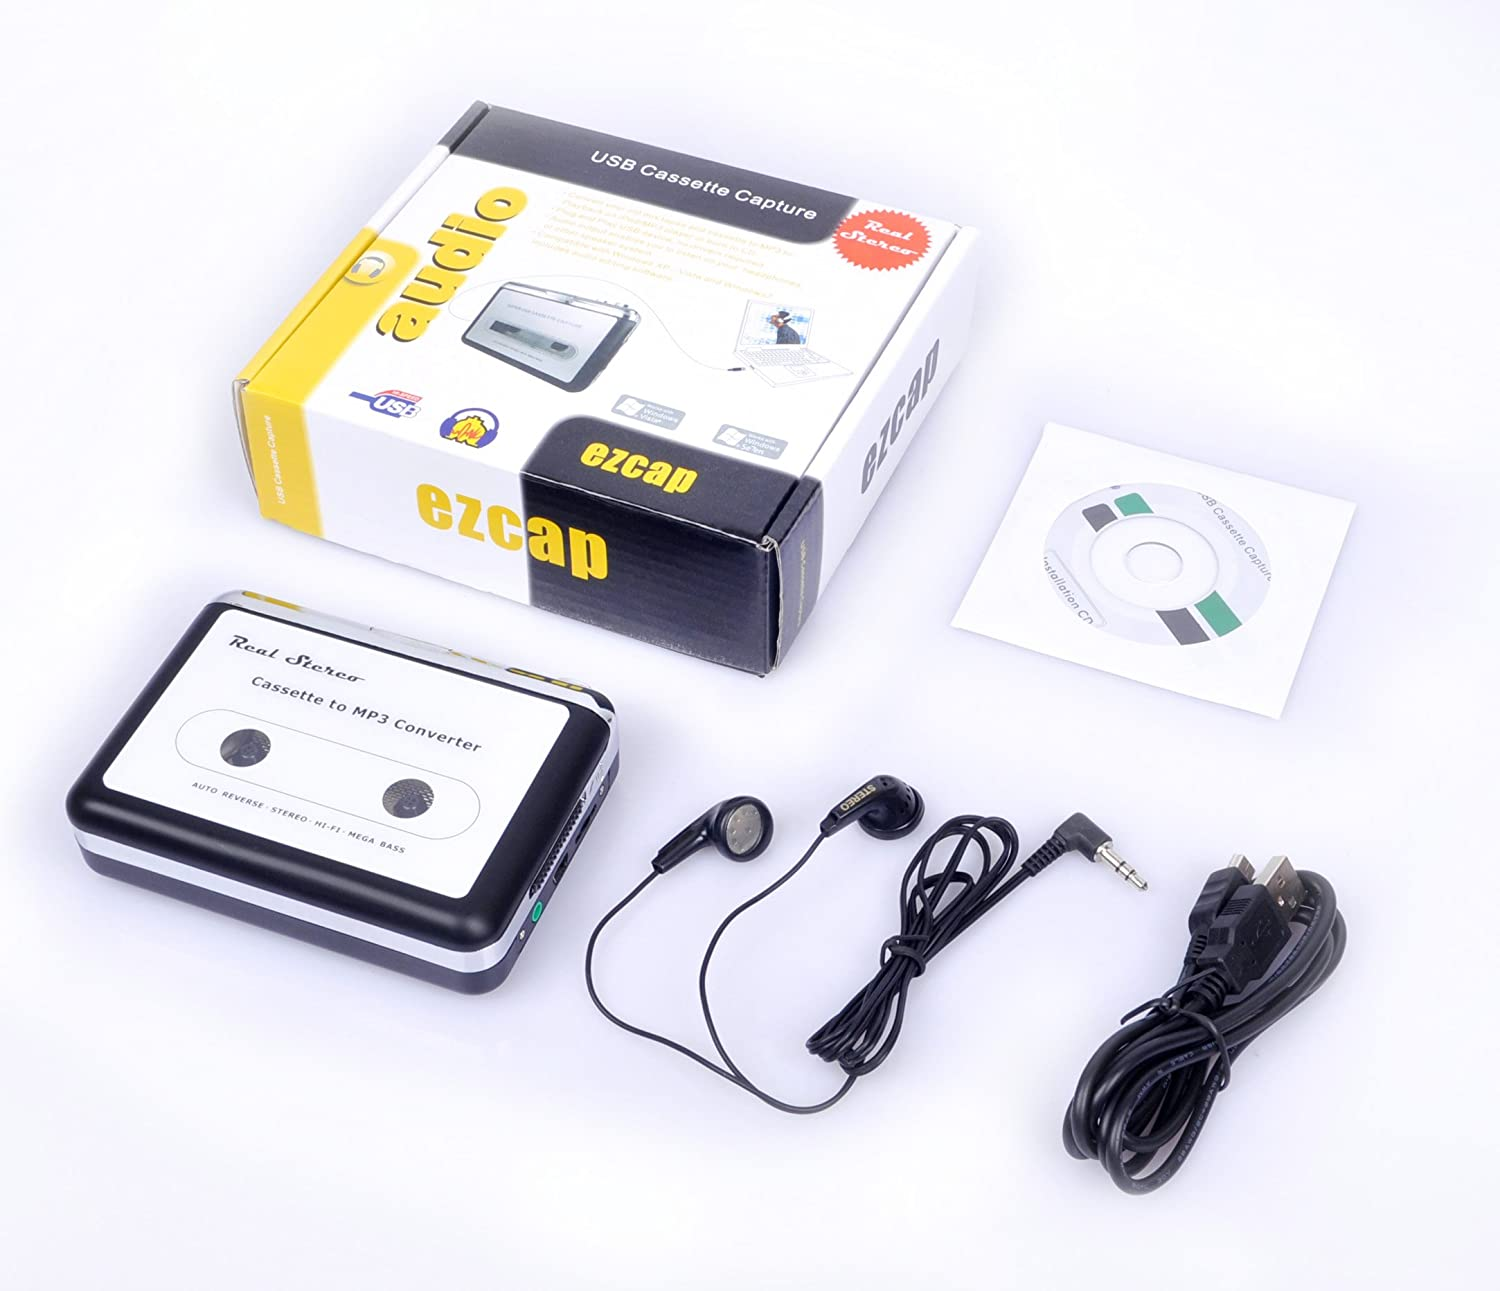 Portable Super USB Cassette Capture, Cassette to MP3 Converter, Cassette Tape-to-MP3 to PC Player with Headphones, Auto-Reverse Function, with Software, ...